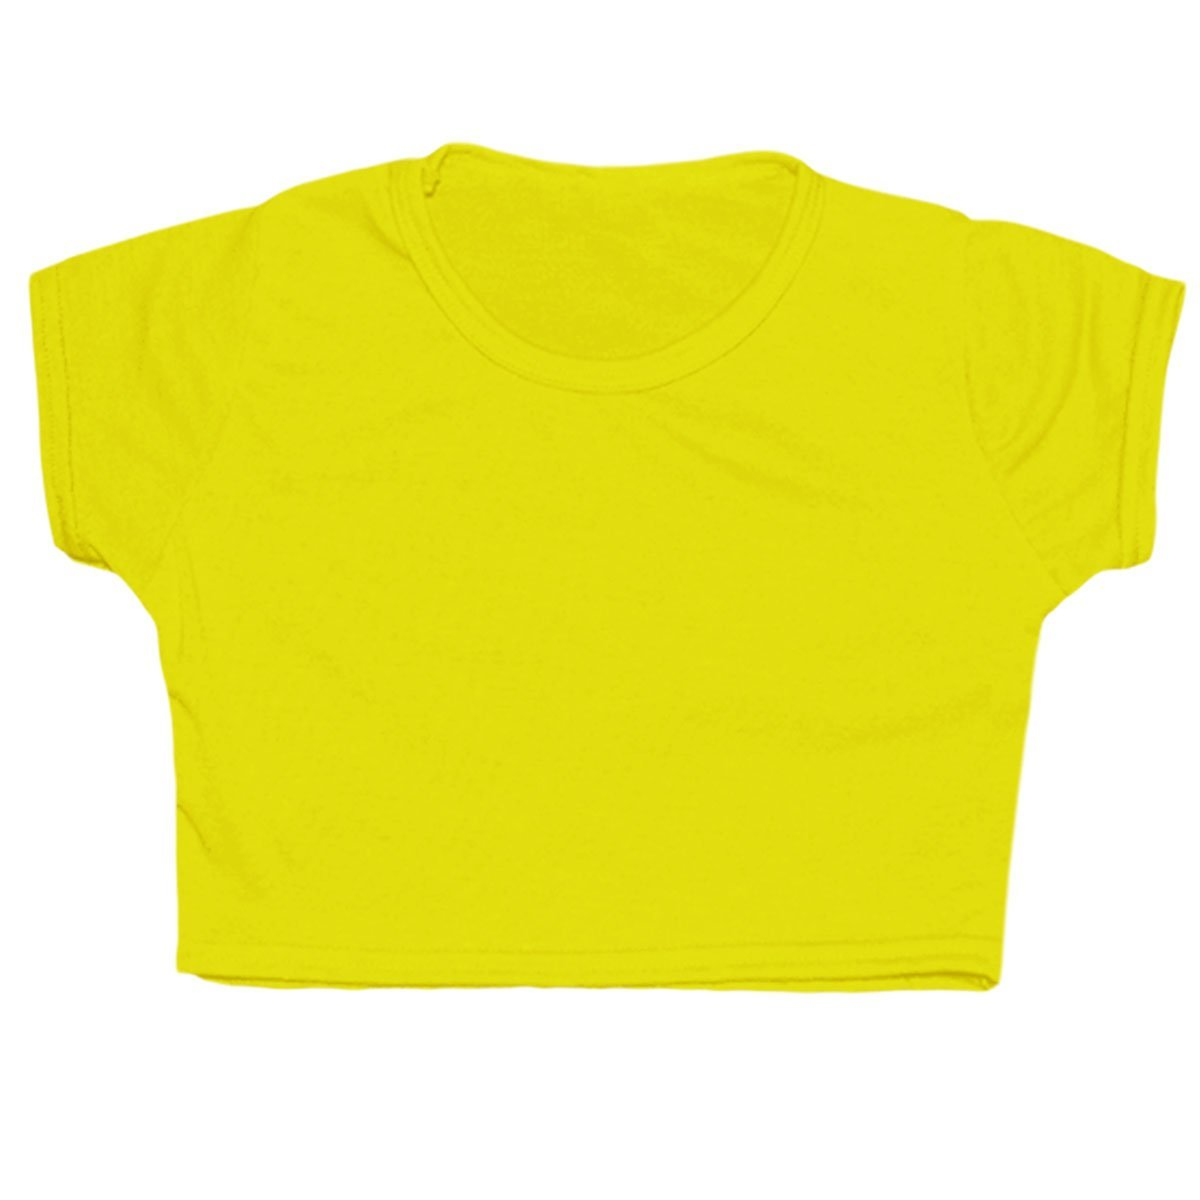 FAST TREND CLOTHING New Tween Kids Girls Neon Fluorescent Plain Short Sleeves Crop Tops Dance Wear Gymnastic Fancy Dress Age: 5-13 Years by Fast-Trend